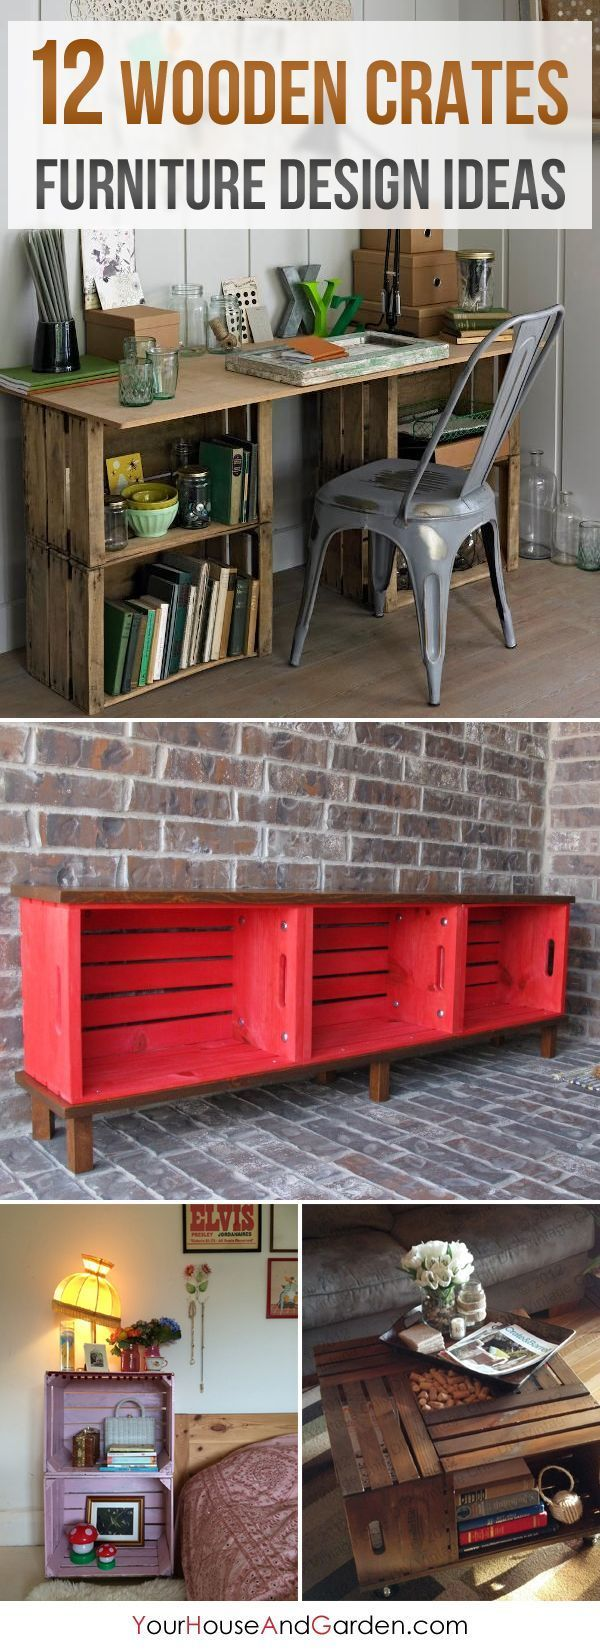 12 Amazing Wooden Crates Furniture Design Ideas. 25  best Cheap wooden tv stands ideas on Pinterest   Eclectic shoe